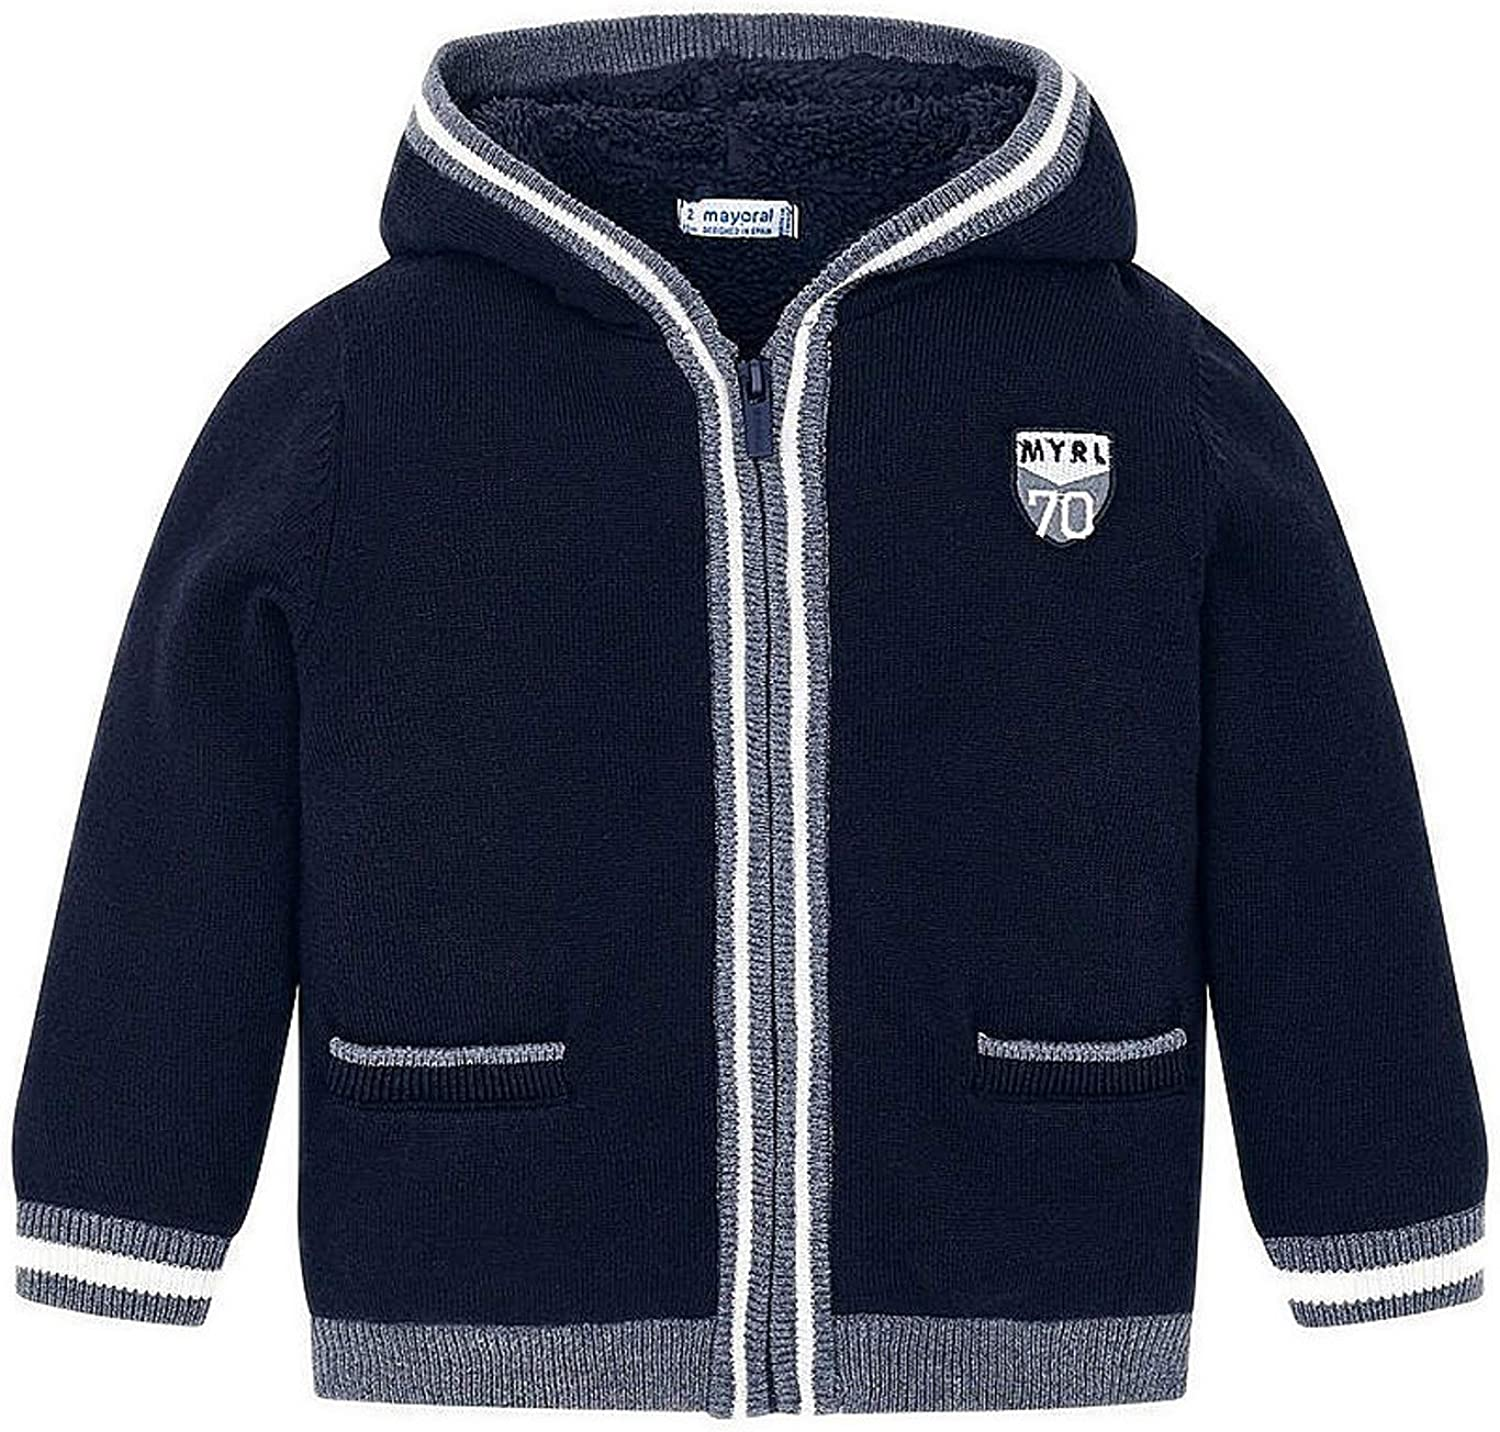 Mayoral - Knit Pullover for Boys - 4323, Navy